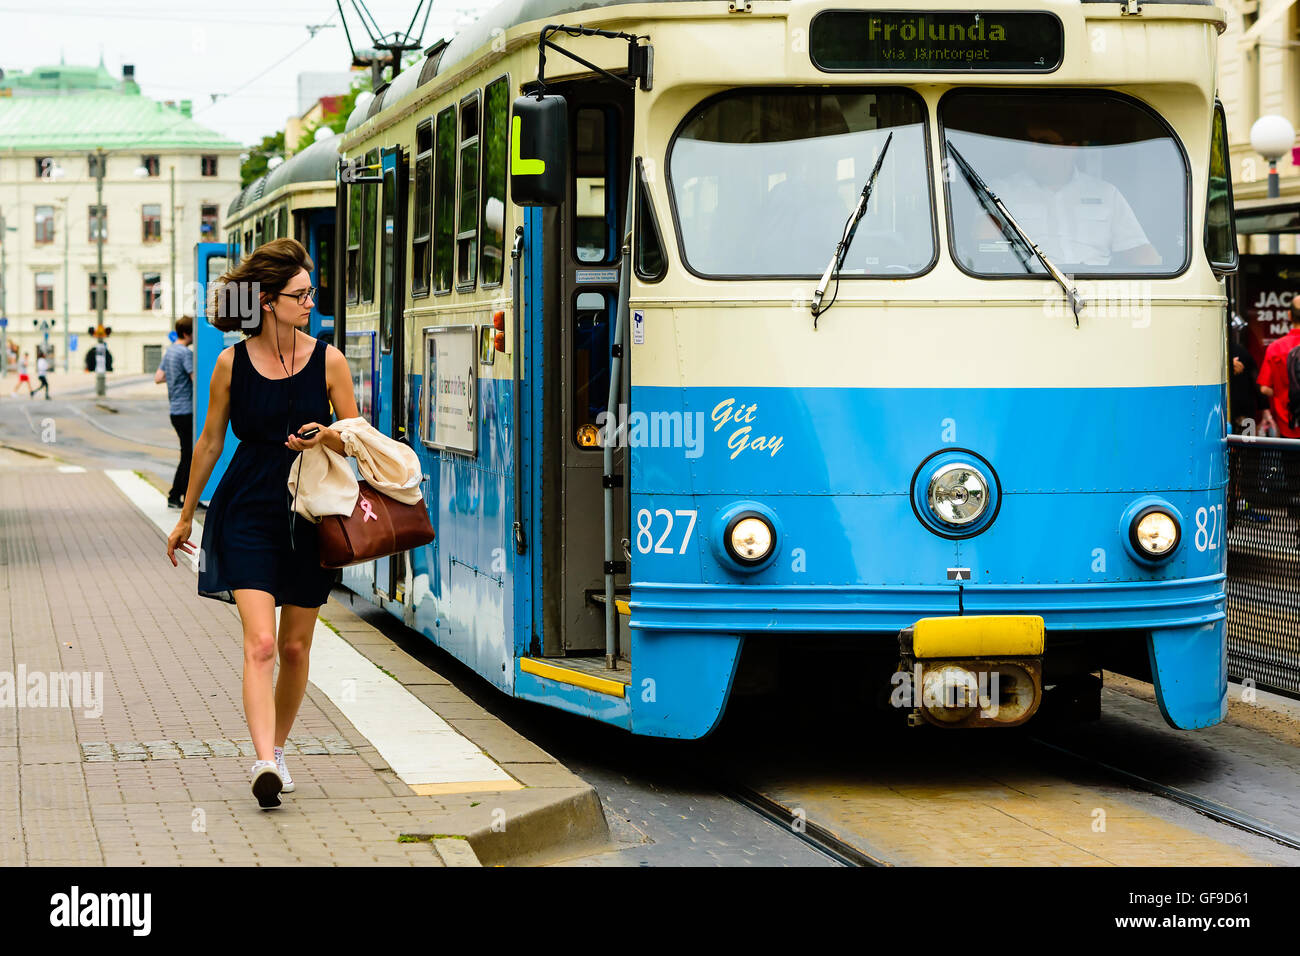 Goteborg, Sweden - July 25, 2016: Real people in everyday life. Lovely woman in glasses walking beside an electric tram. Stock Photo